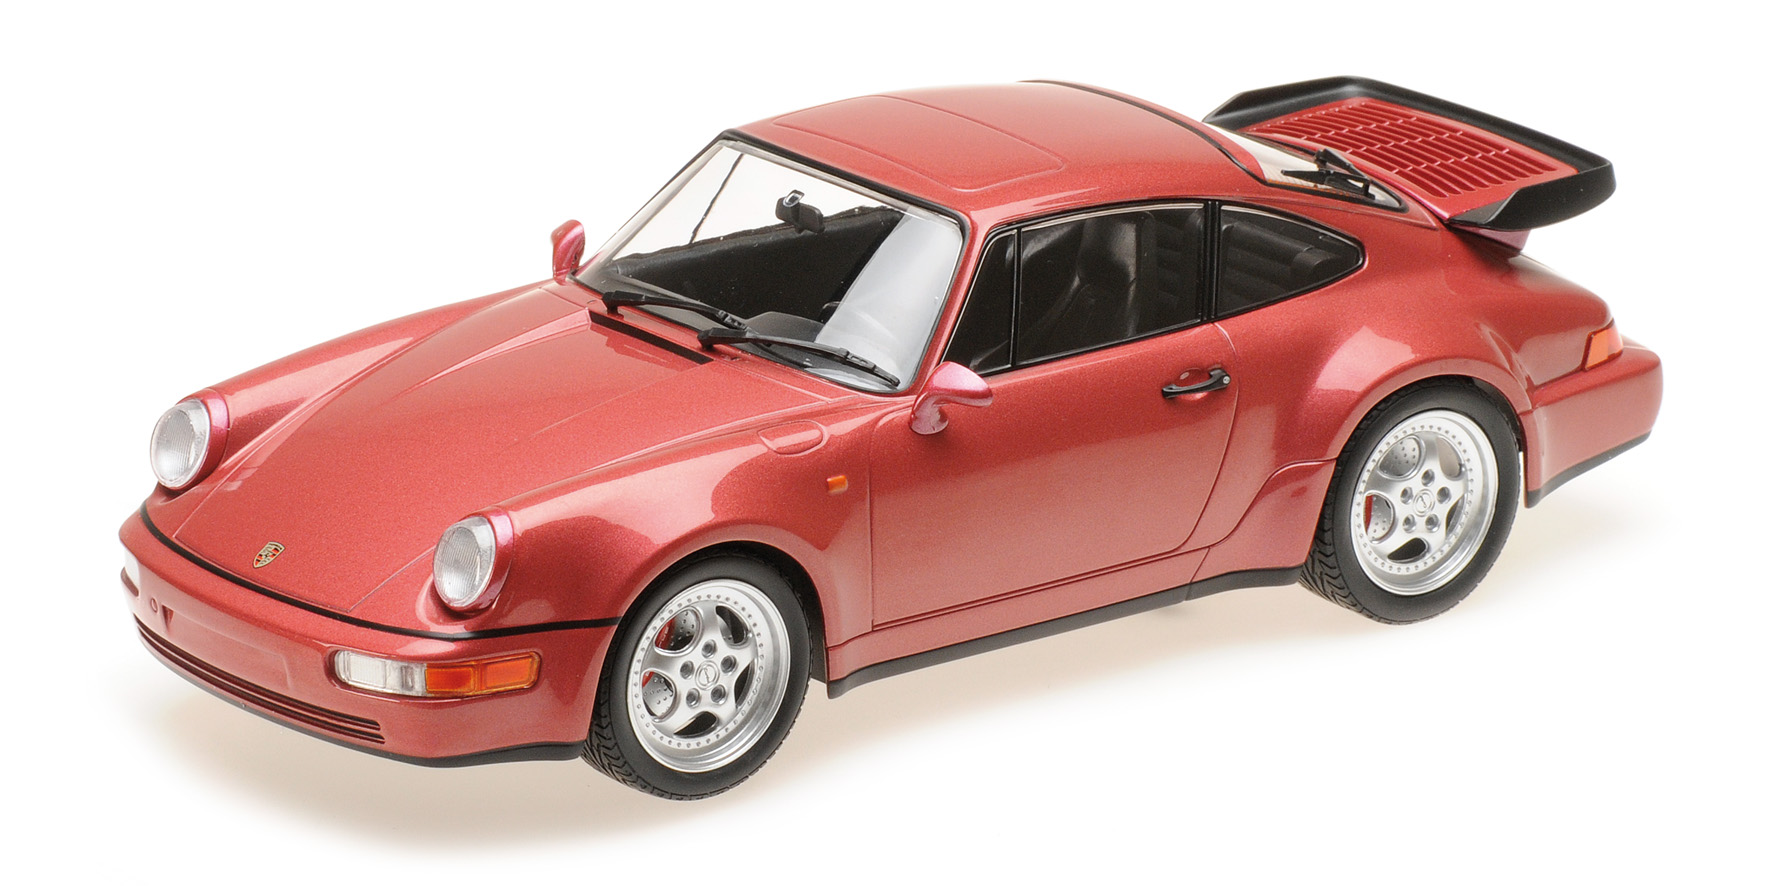 Porsche 911 (964) Turbo 1990 Rood Metallic